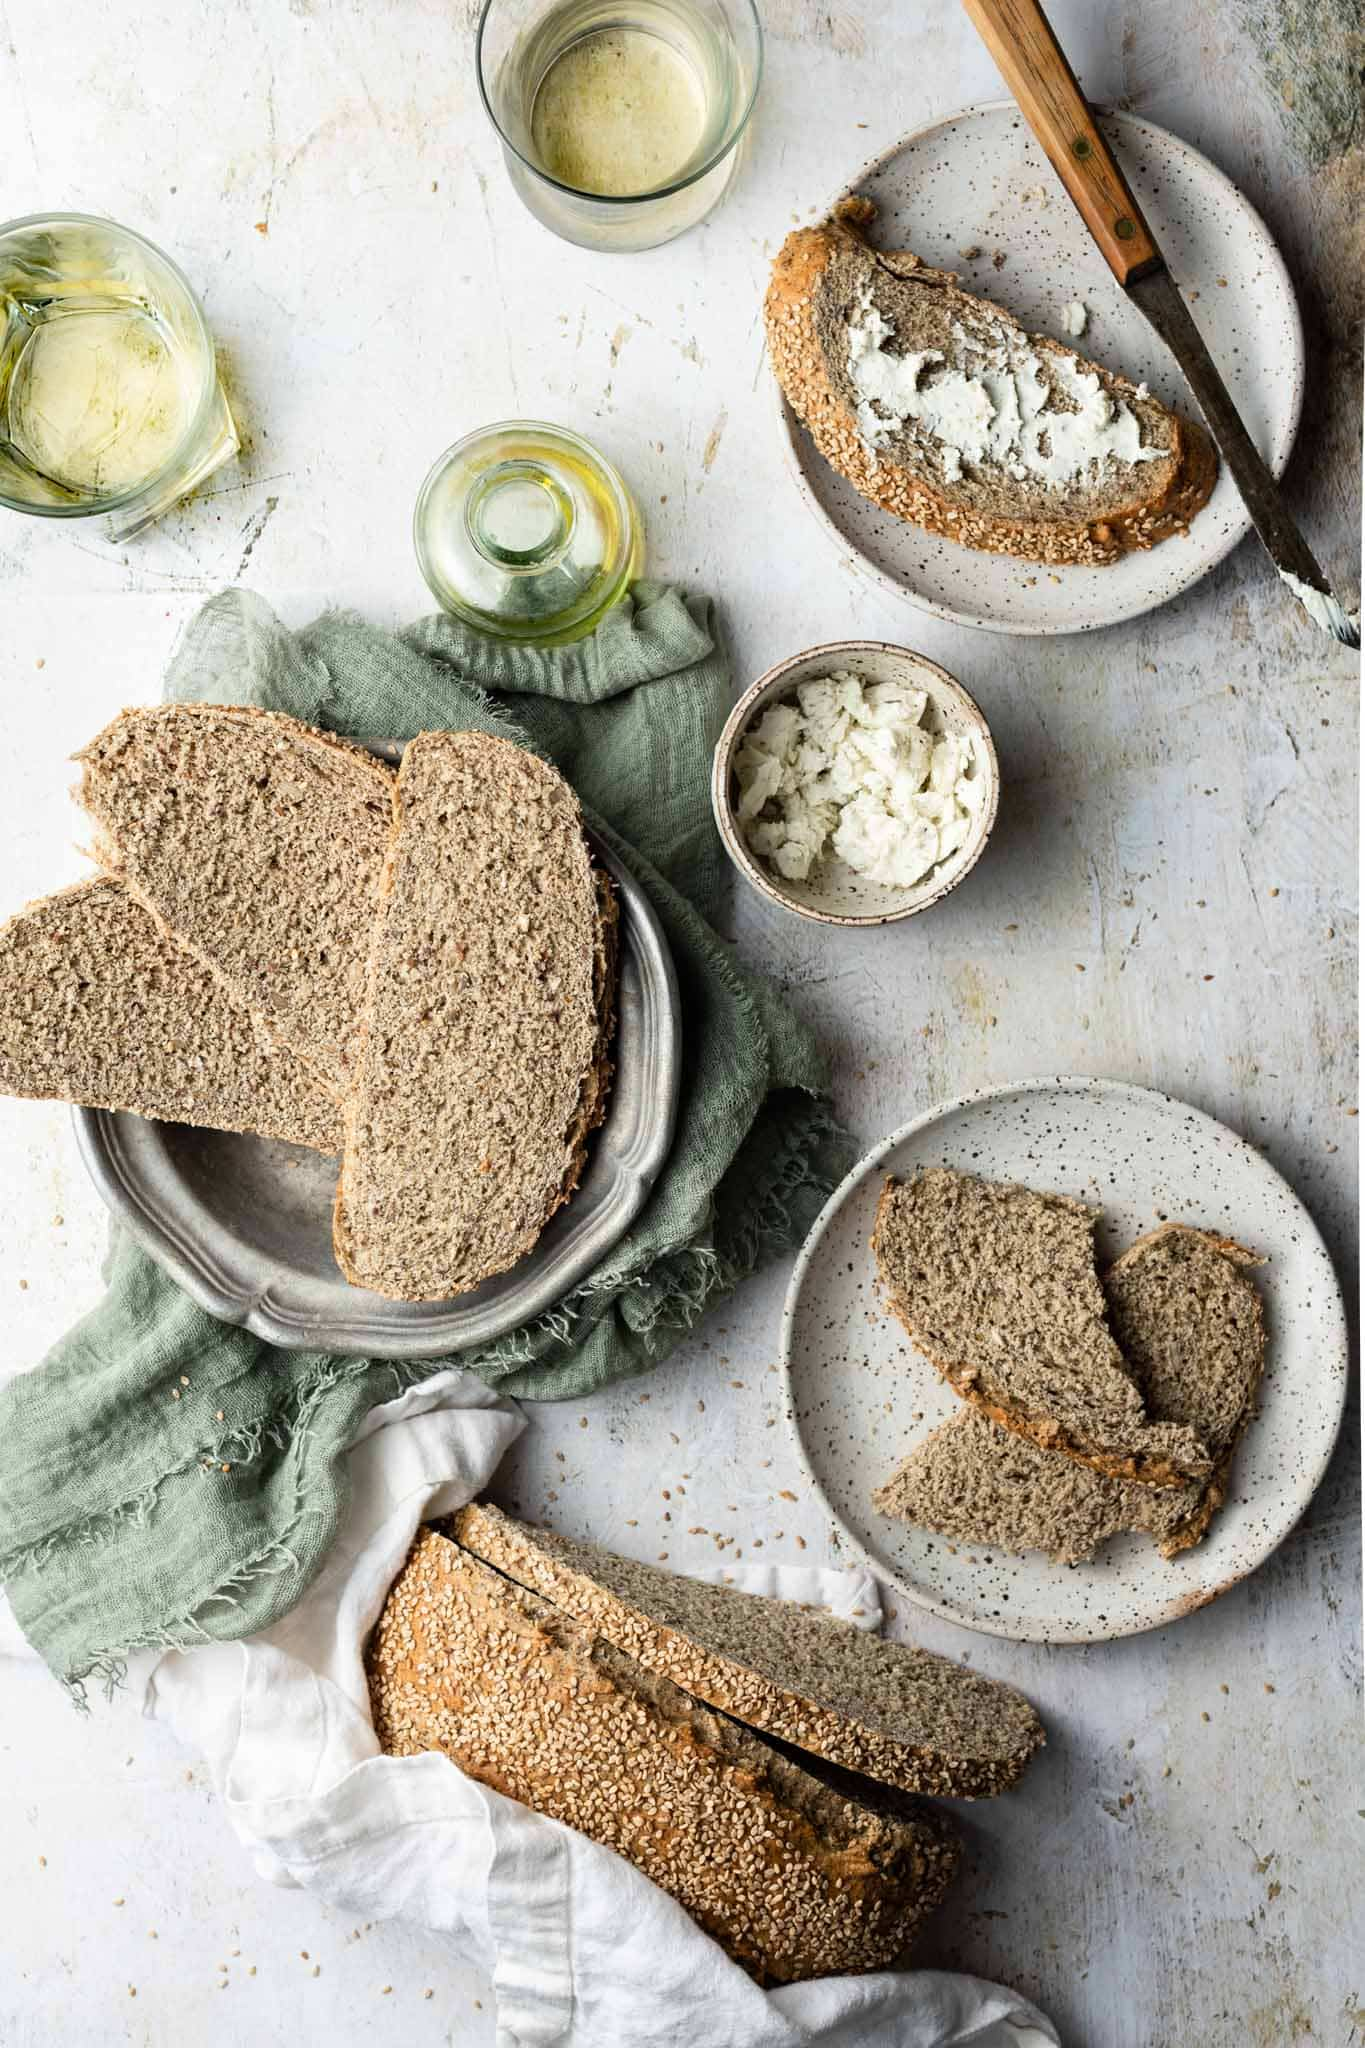 Easy Multigrain Bread served with herb goat cheese and wine.